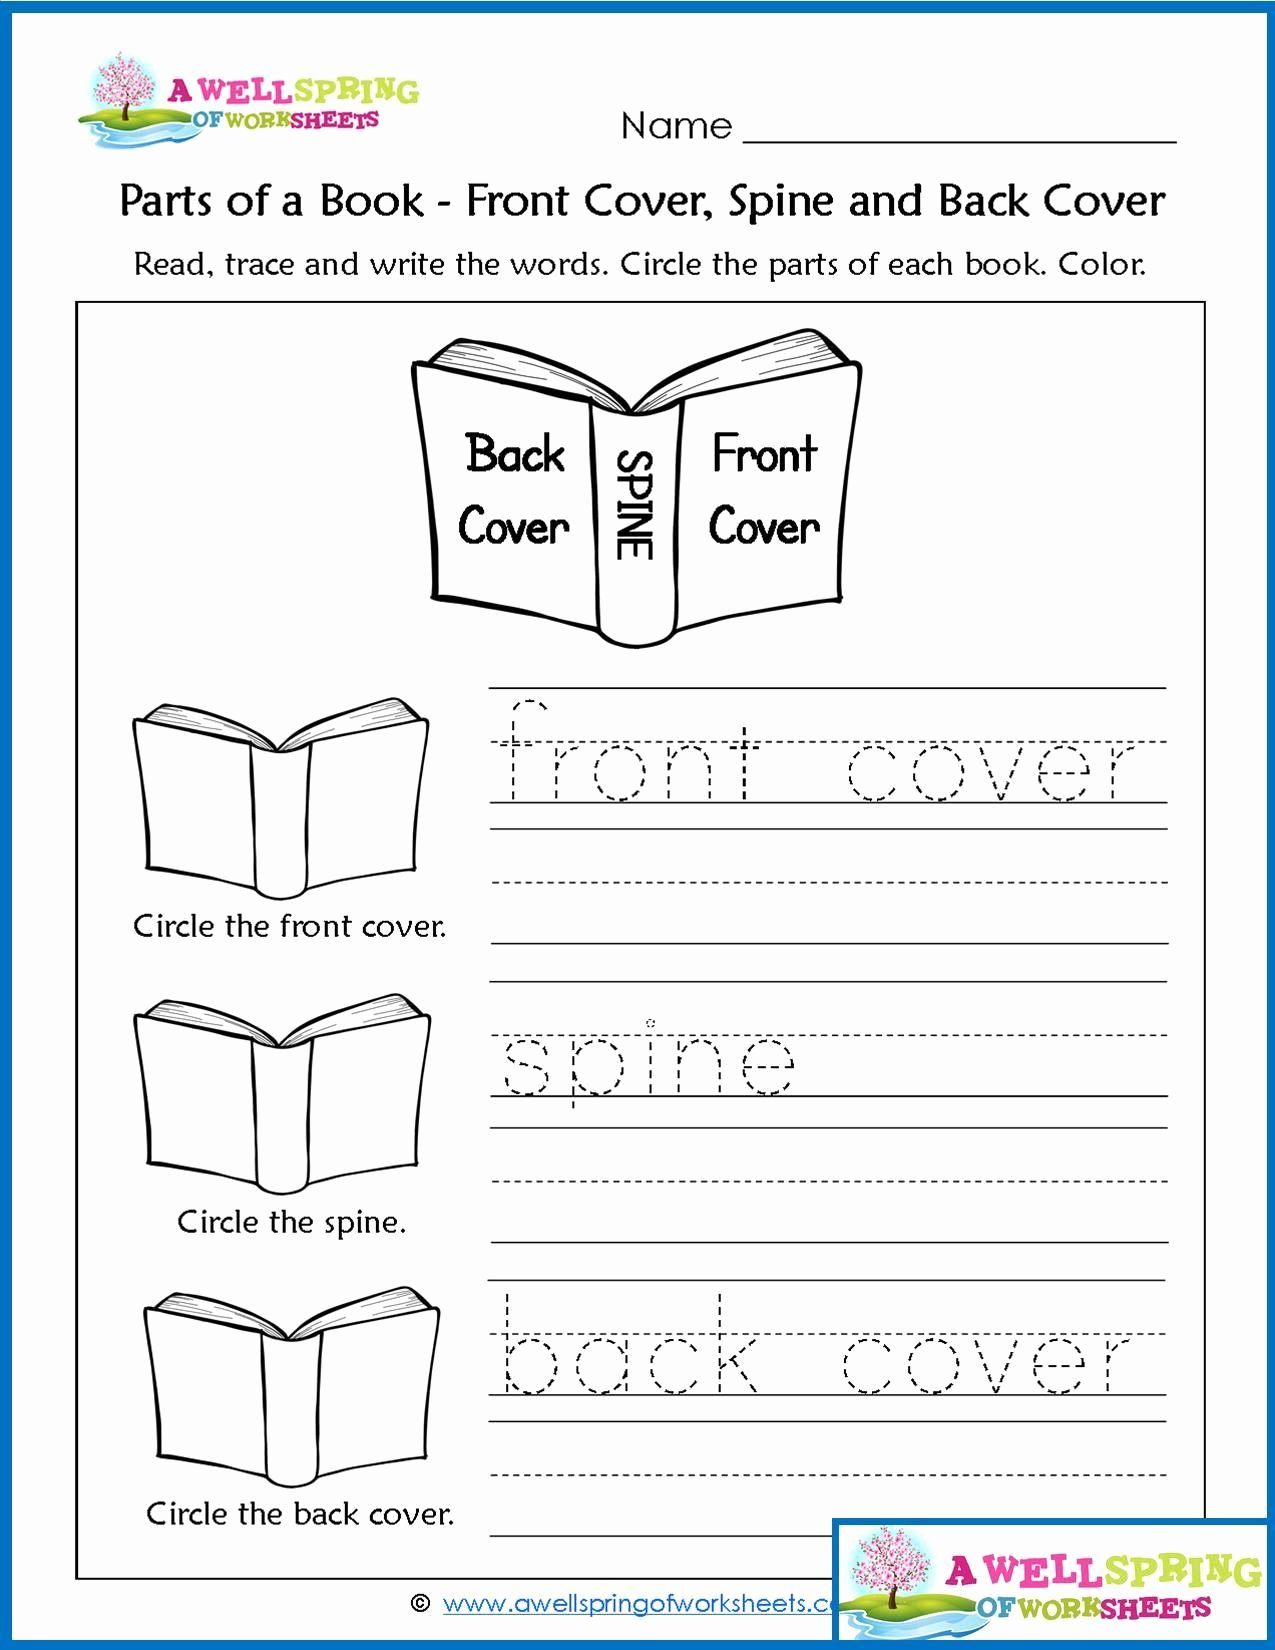 Parts Of A Book Worksheet Elegant Worksheets by Subject Concepts Of Print